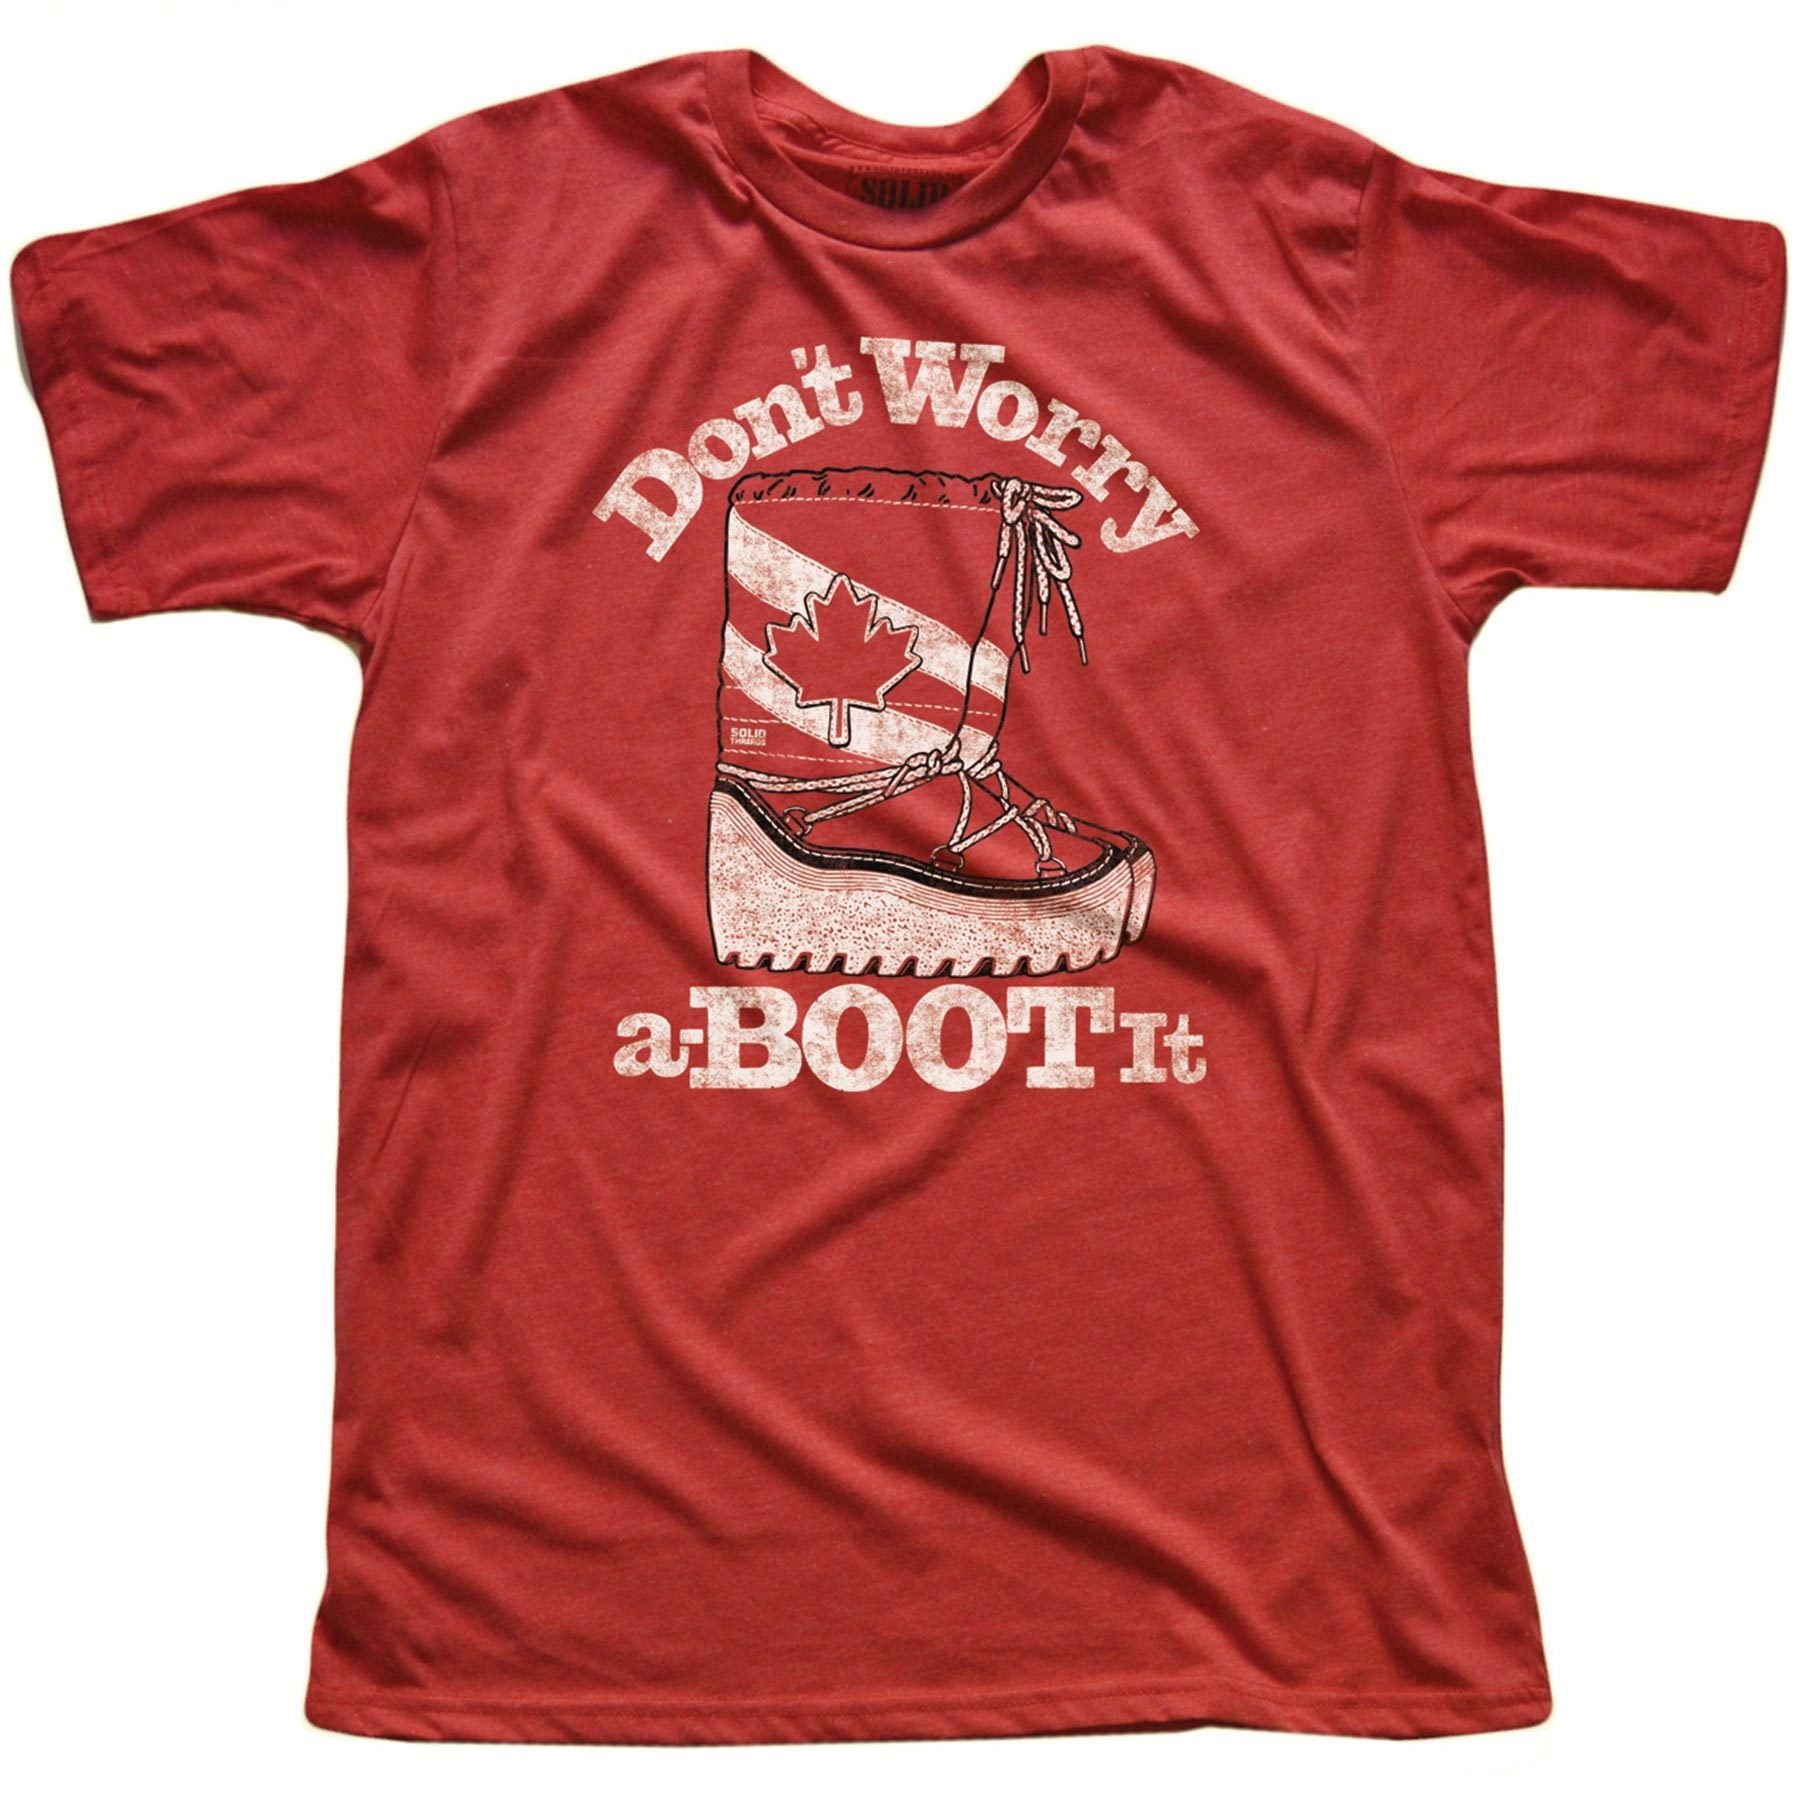 Don't Worry a-BOOT It Vintage Inspired T-shirt | SOLID THREADS